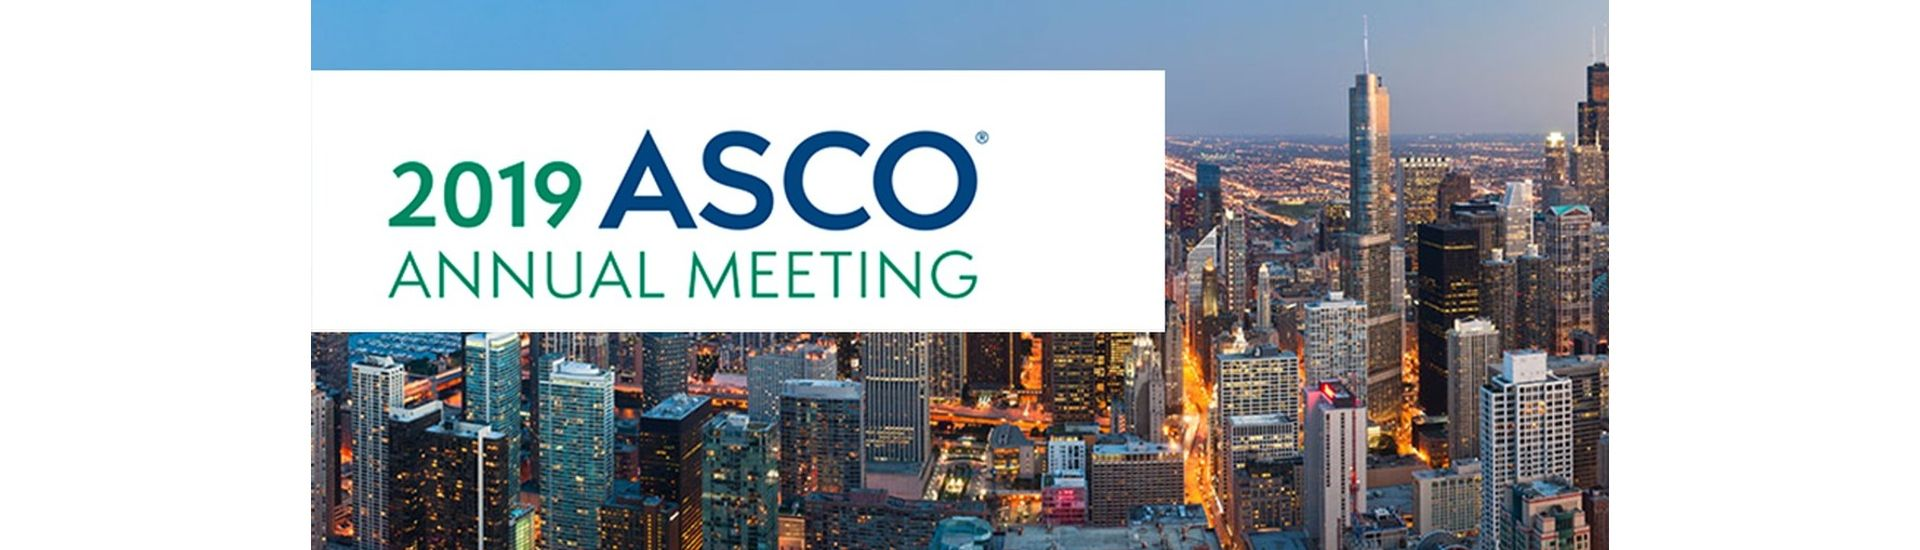 SAB Meeting in Chicago, during ASCO 2019